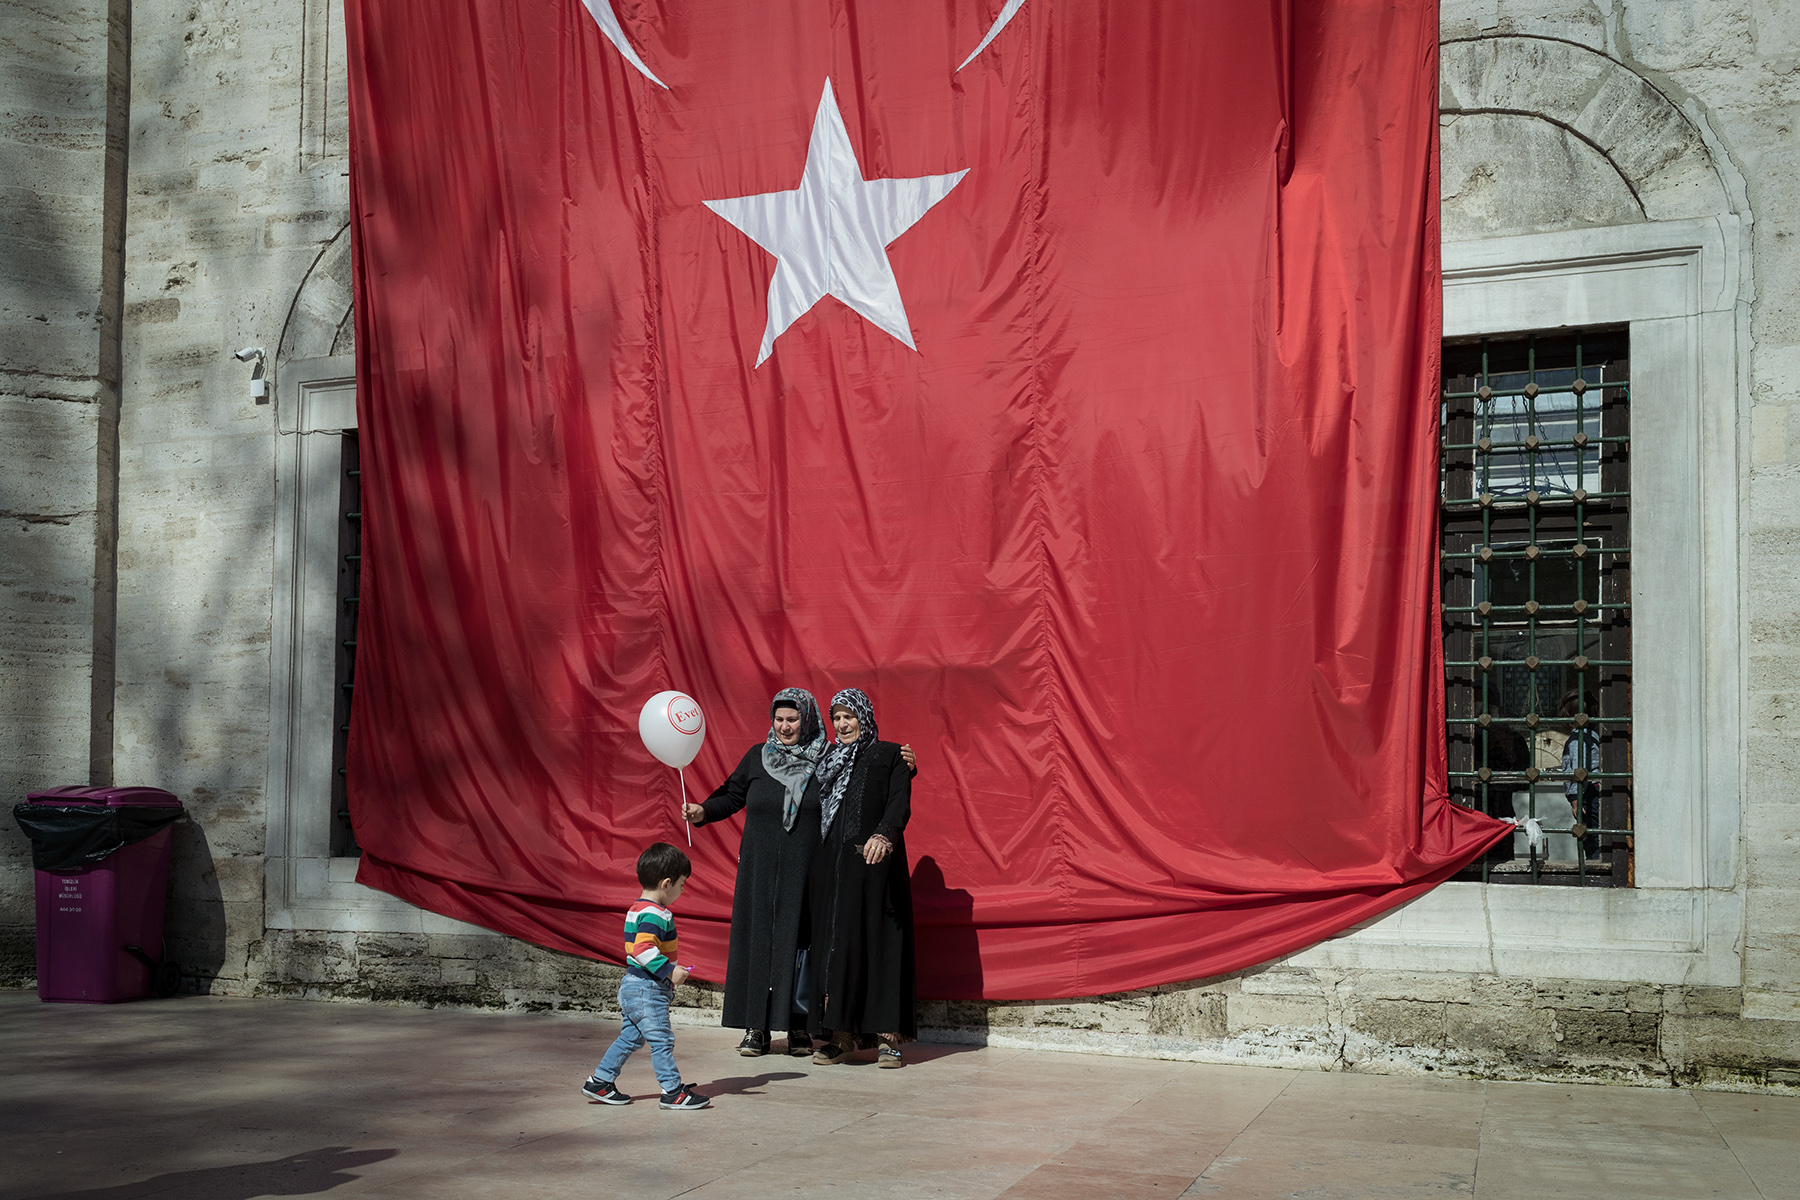 Women hold a balloon that reads 'evet' (yes) for the Turkish referendum in front of Eyup Sultan Mosque in Istanbul, Turkey on April 11, 2017.